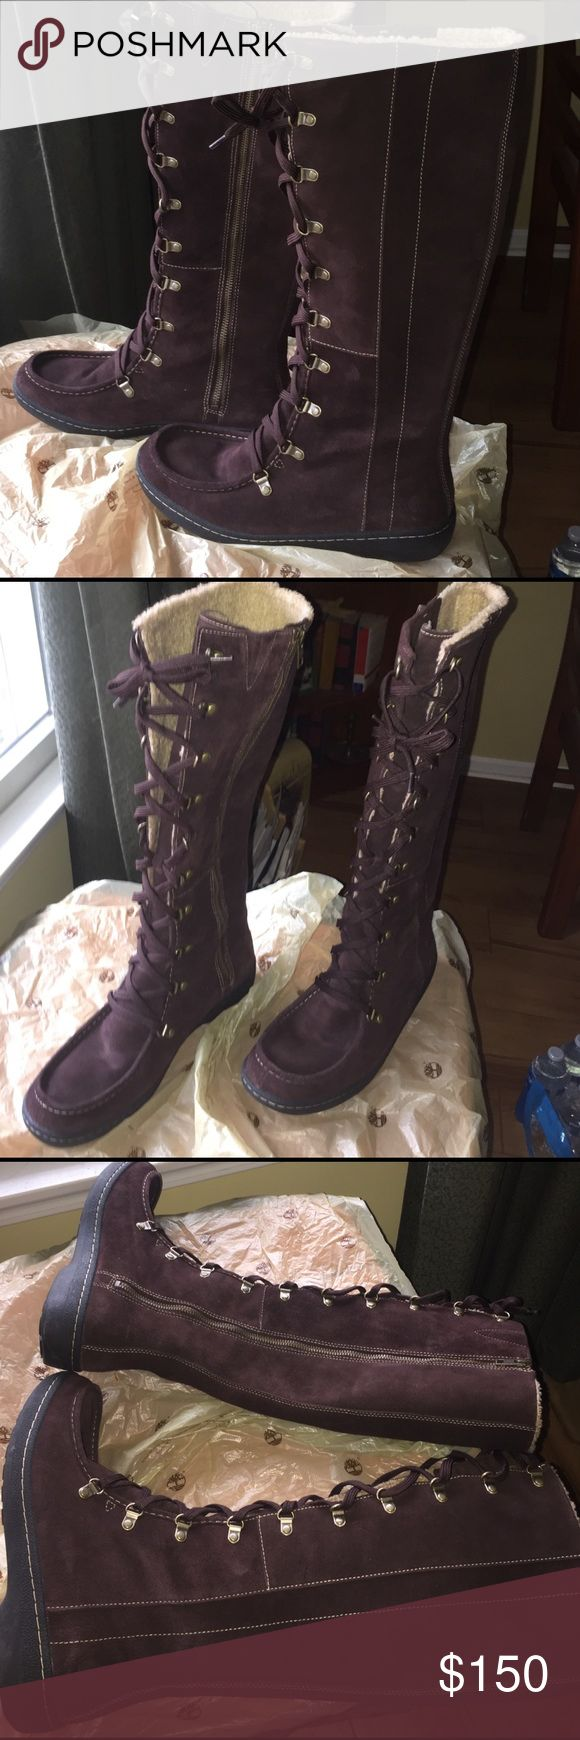 SALENWOT Timberland Femme Tall Suede Boots 9 Beautiful Timberland Suede Femme Tall Winnicut Boots. Dark brown, great quality, weather proofed. Tried on once. Orig box damaged, inside packaging still intact - size 9 Make me an offer - FREE NEW IVORY TALL BOOT SOCKS w/ Purchase (pic above) Timberland Shoes Lace Up Boots